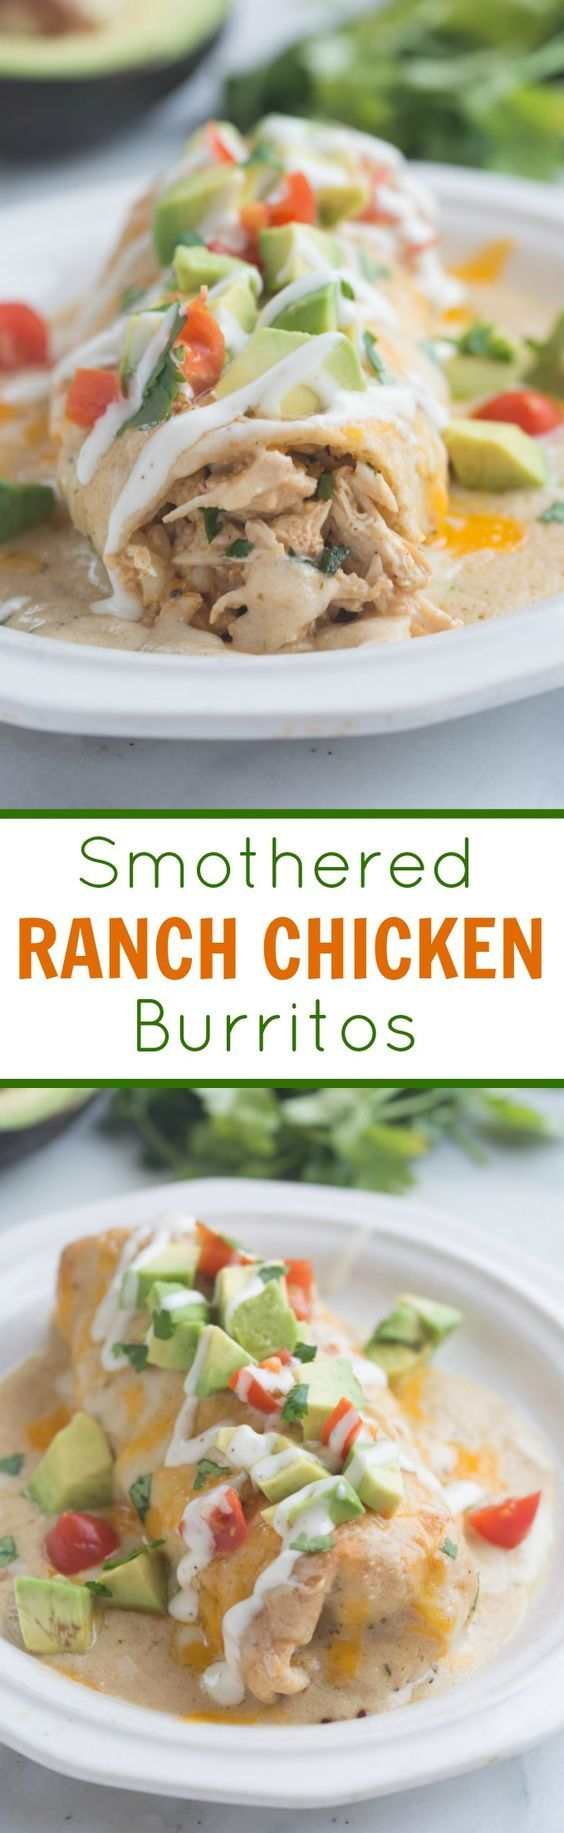 These amazing Smothered Ranch Chicken Burritos are baked until crisp and then smothered in a creamy homemade ranch sauce.| Tastes Better From Scratch